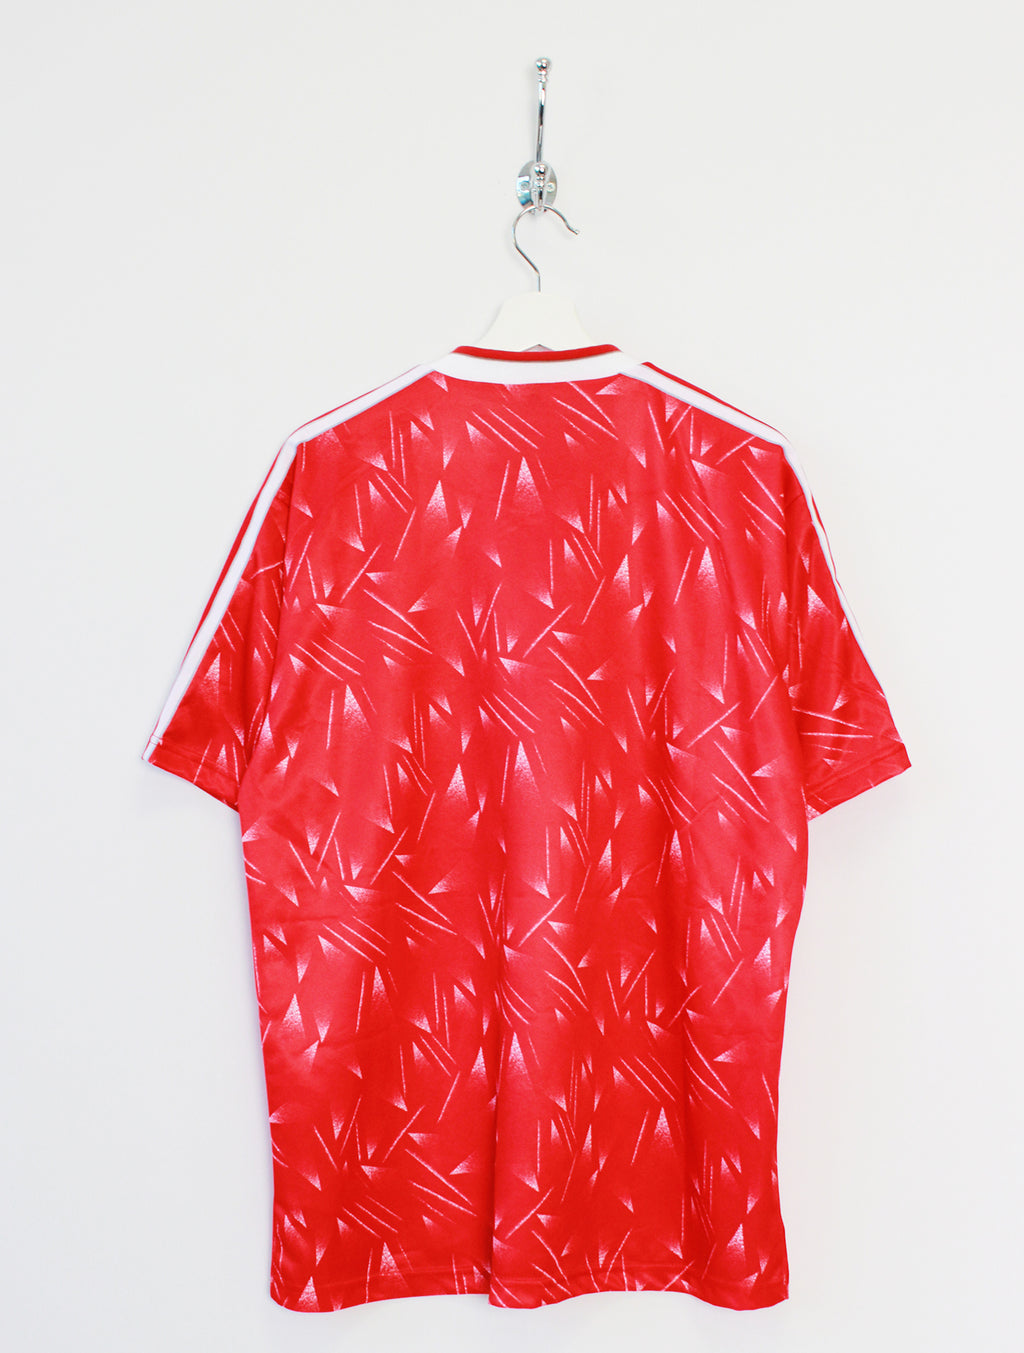 Adidas Liverpool Football Shirt (XL)